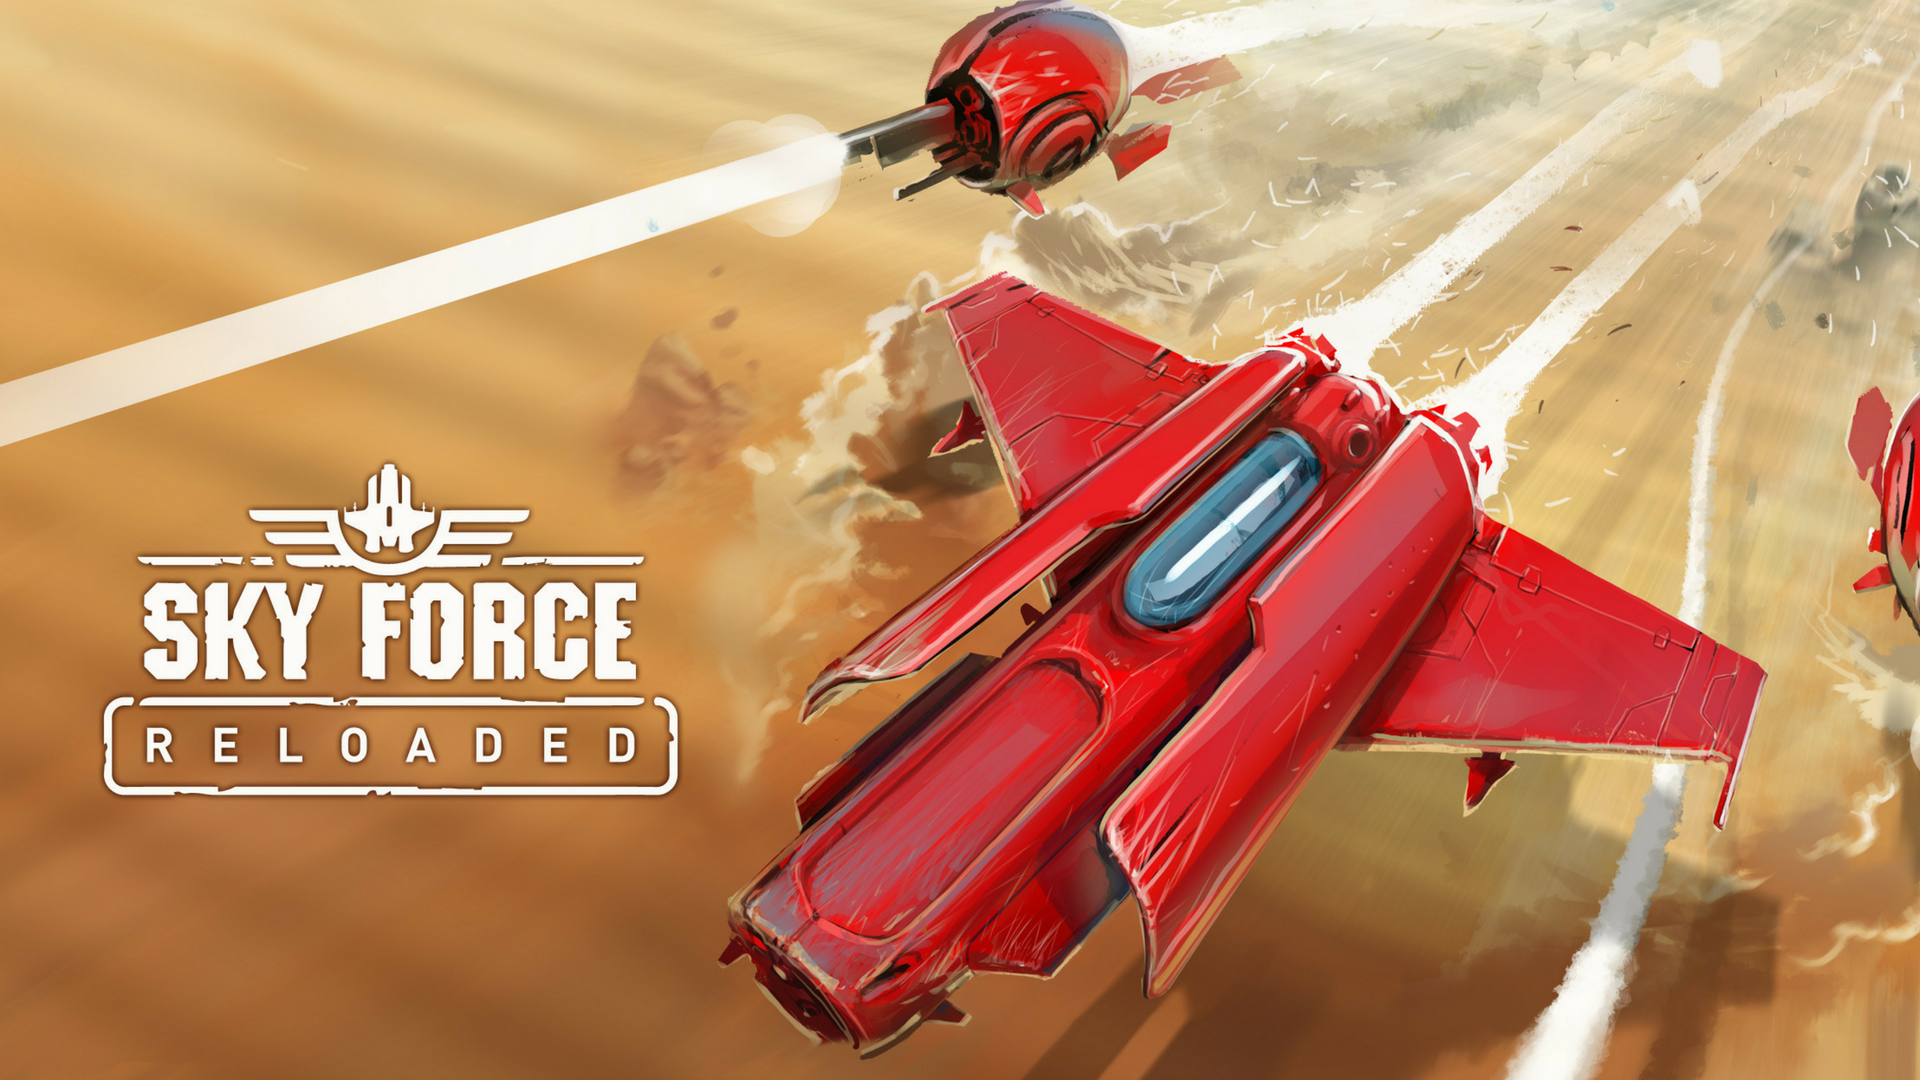 Video For Sky Force Reloaded Lifts off on Xbox One